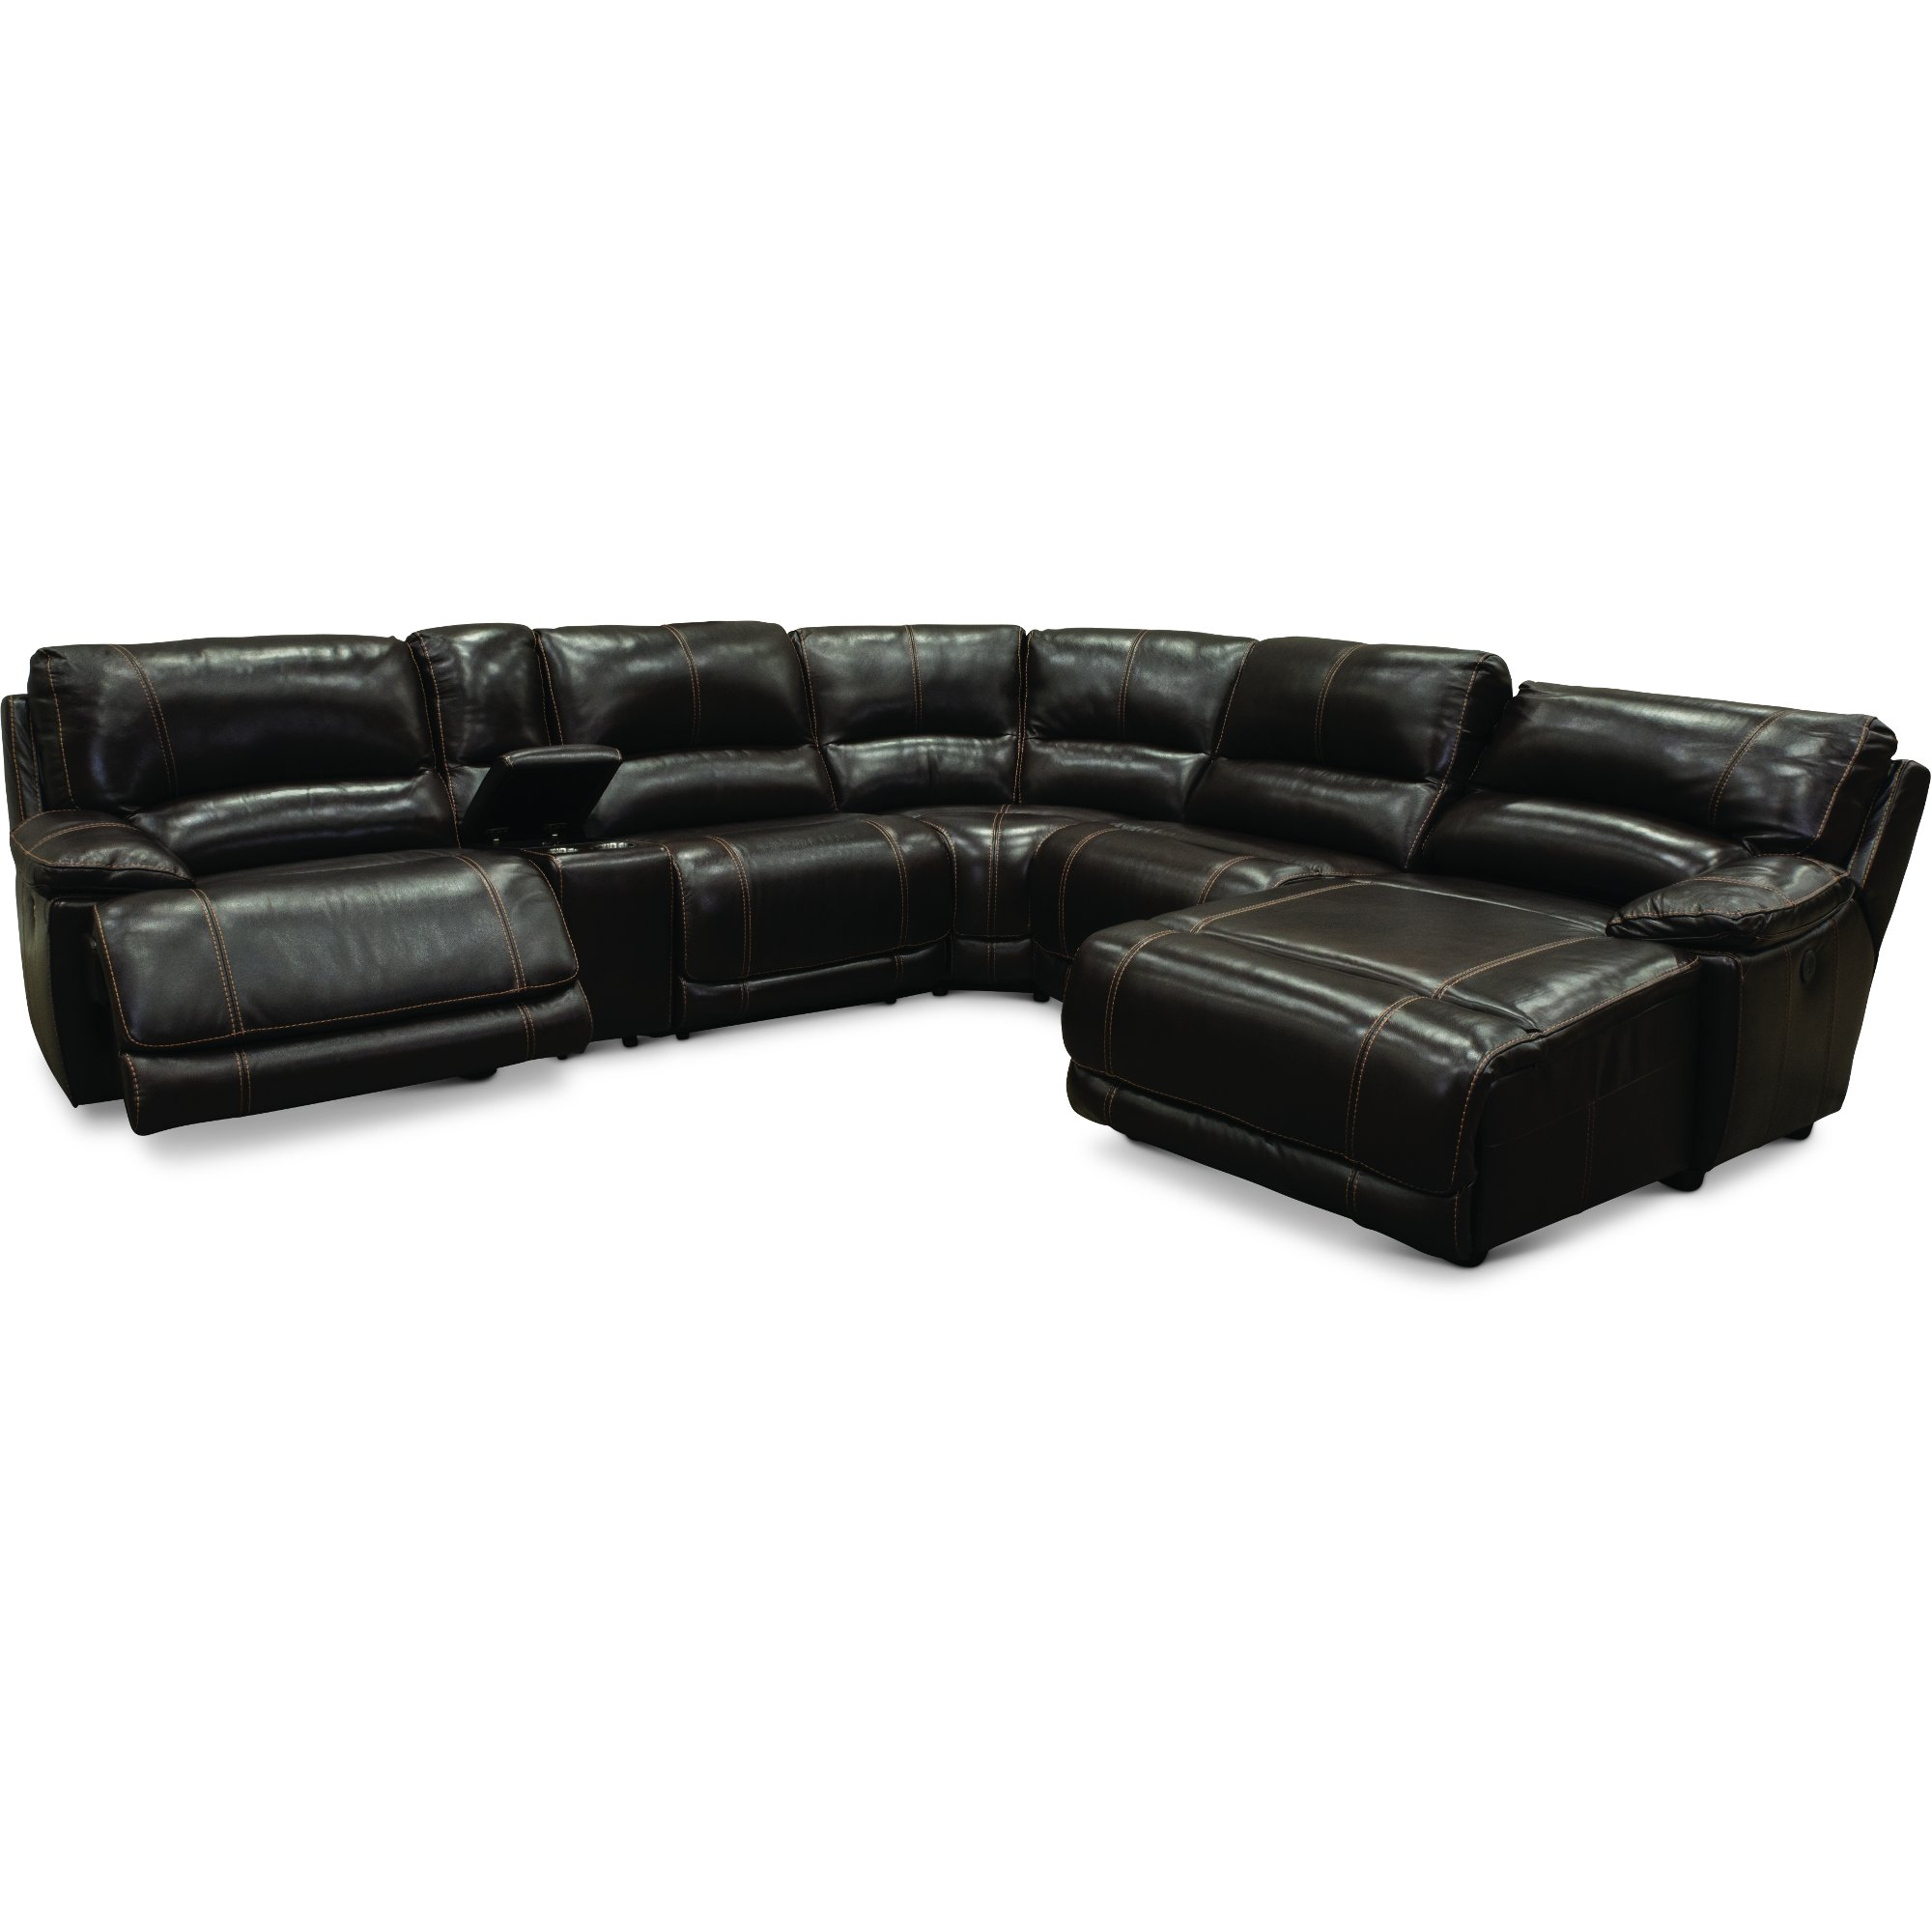 Etonnant Brown 6 Piece Power Reclining Sectional Sofa   Brant